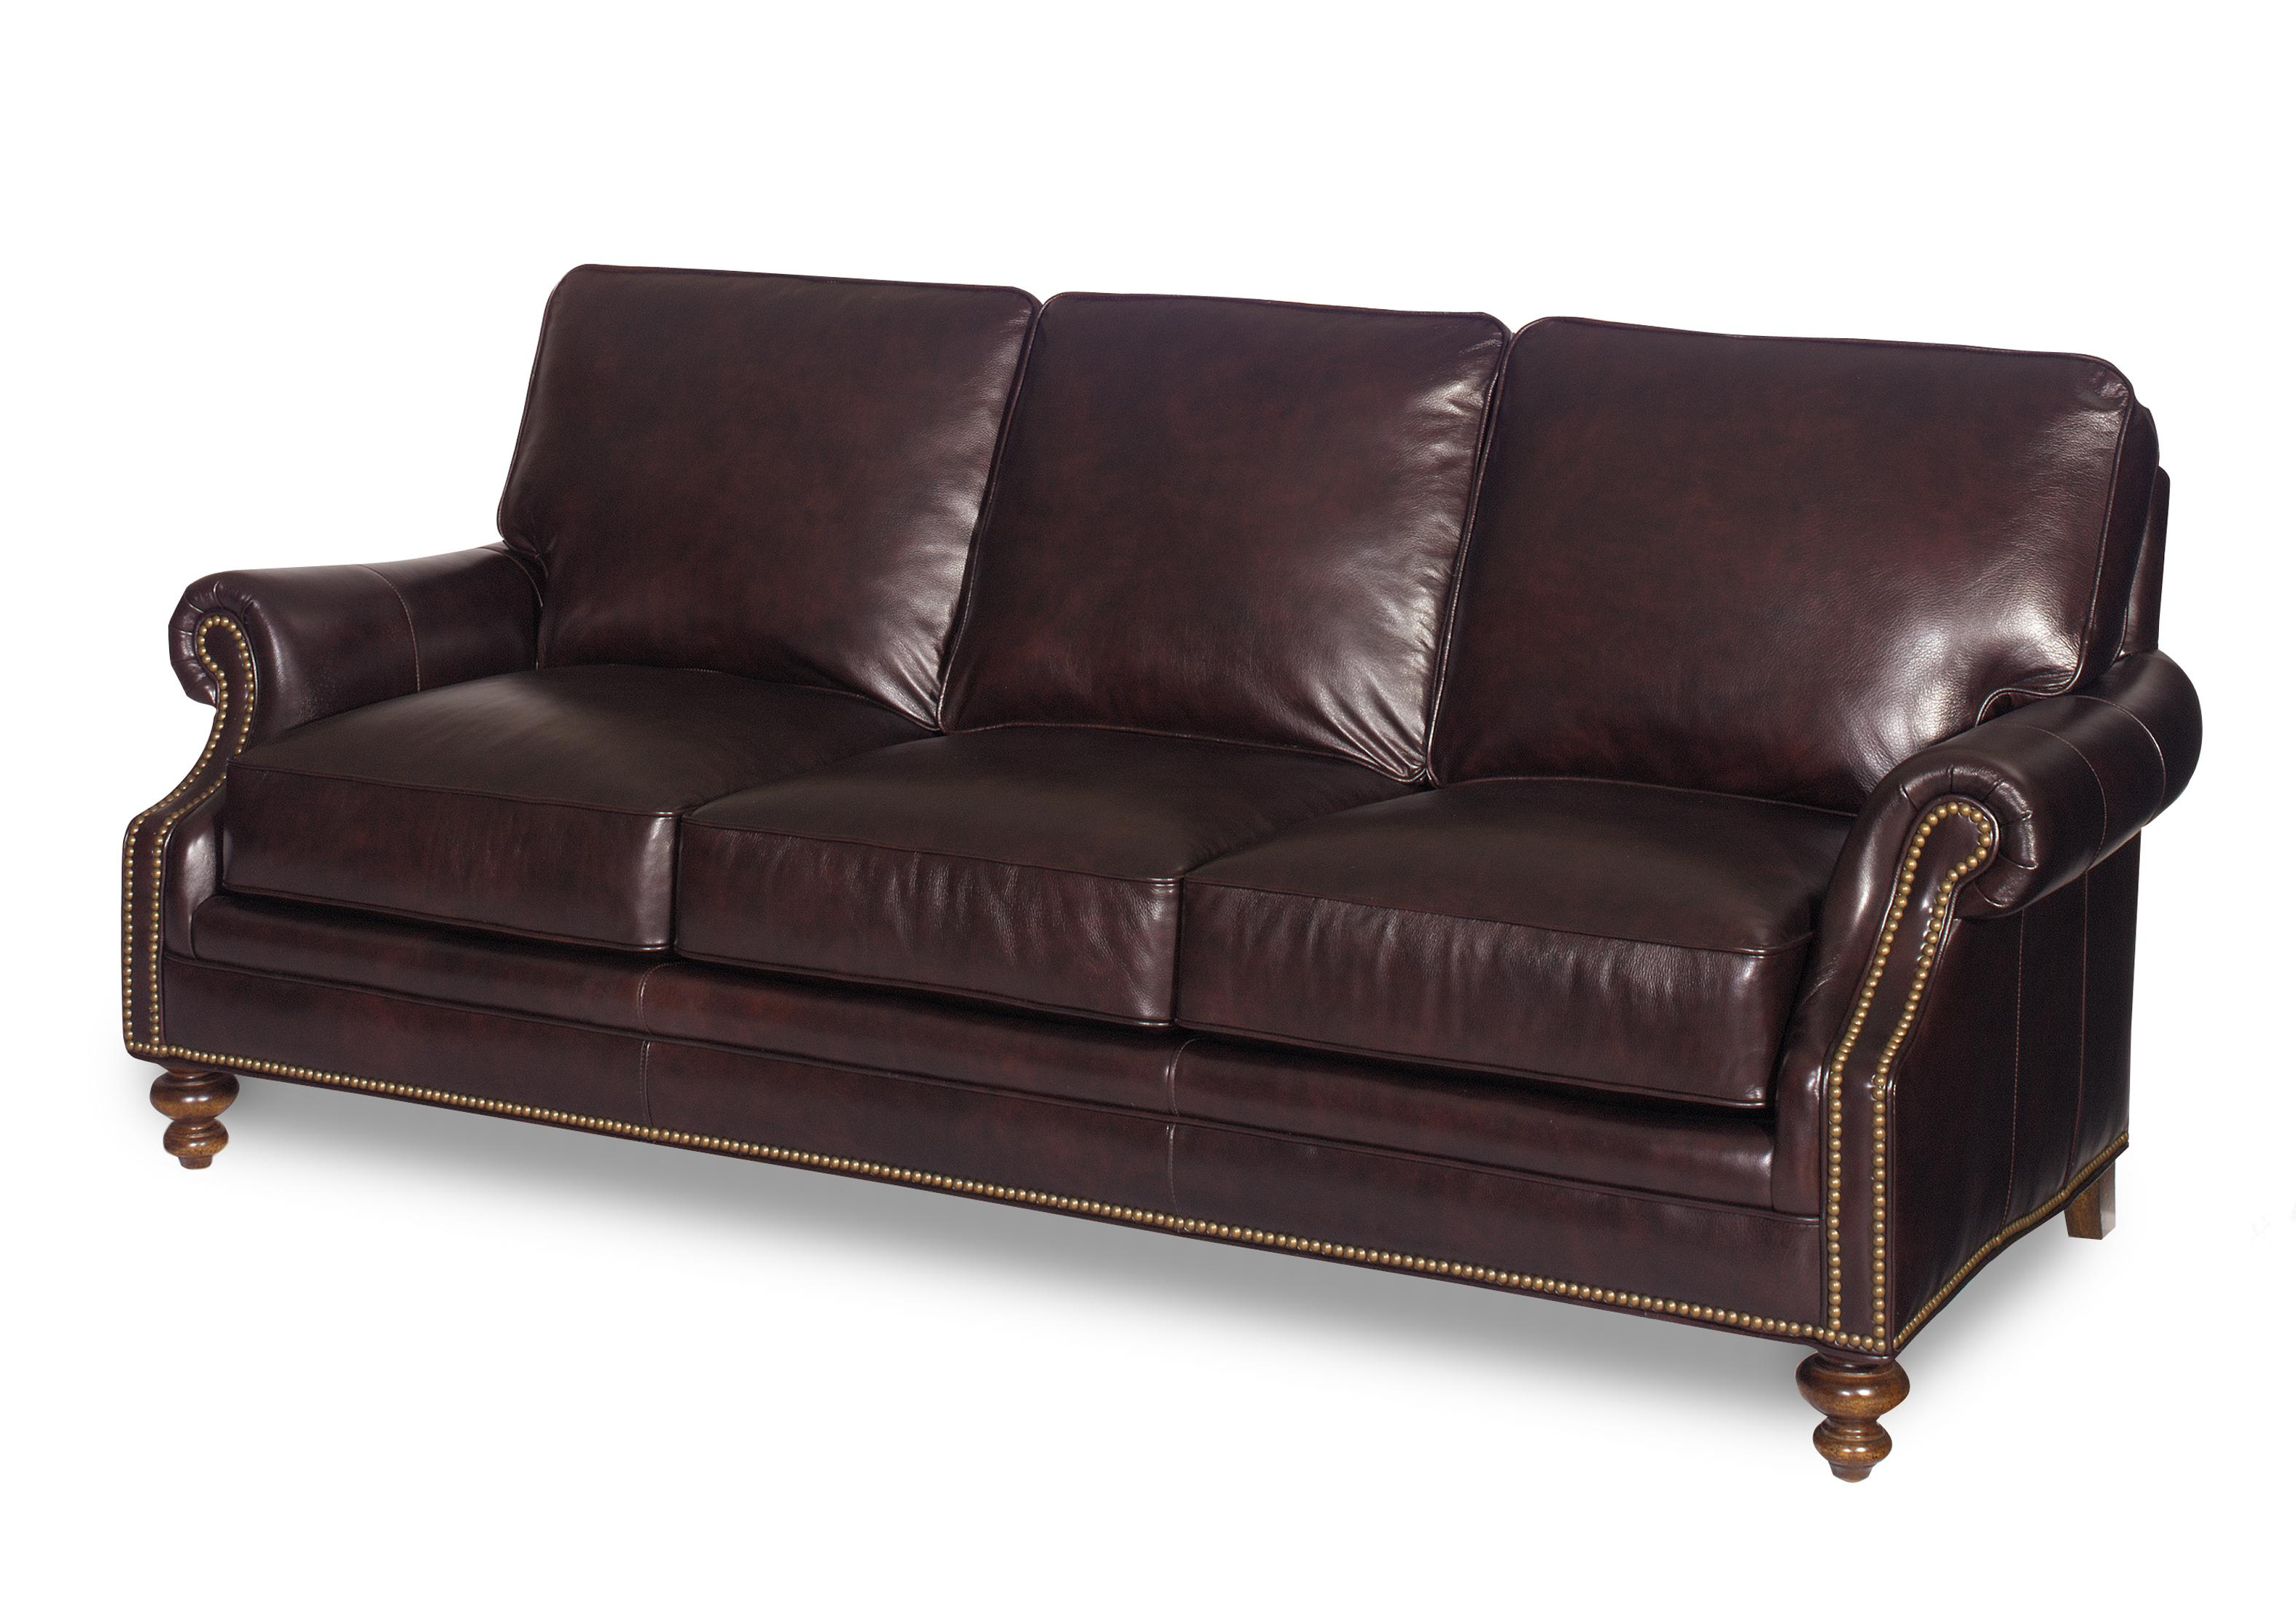 Stationary Seating West Haven Stationary Sofa by Bradington Young at Baer's Furniture